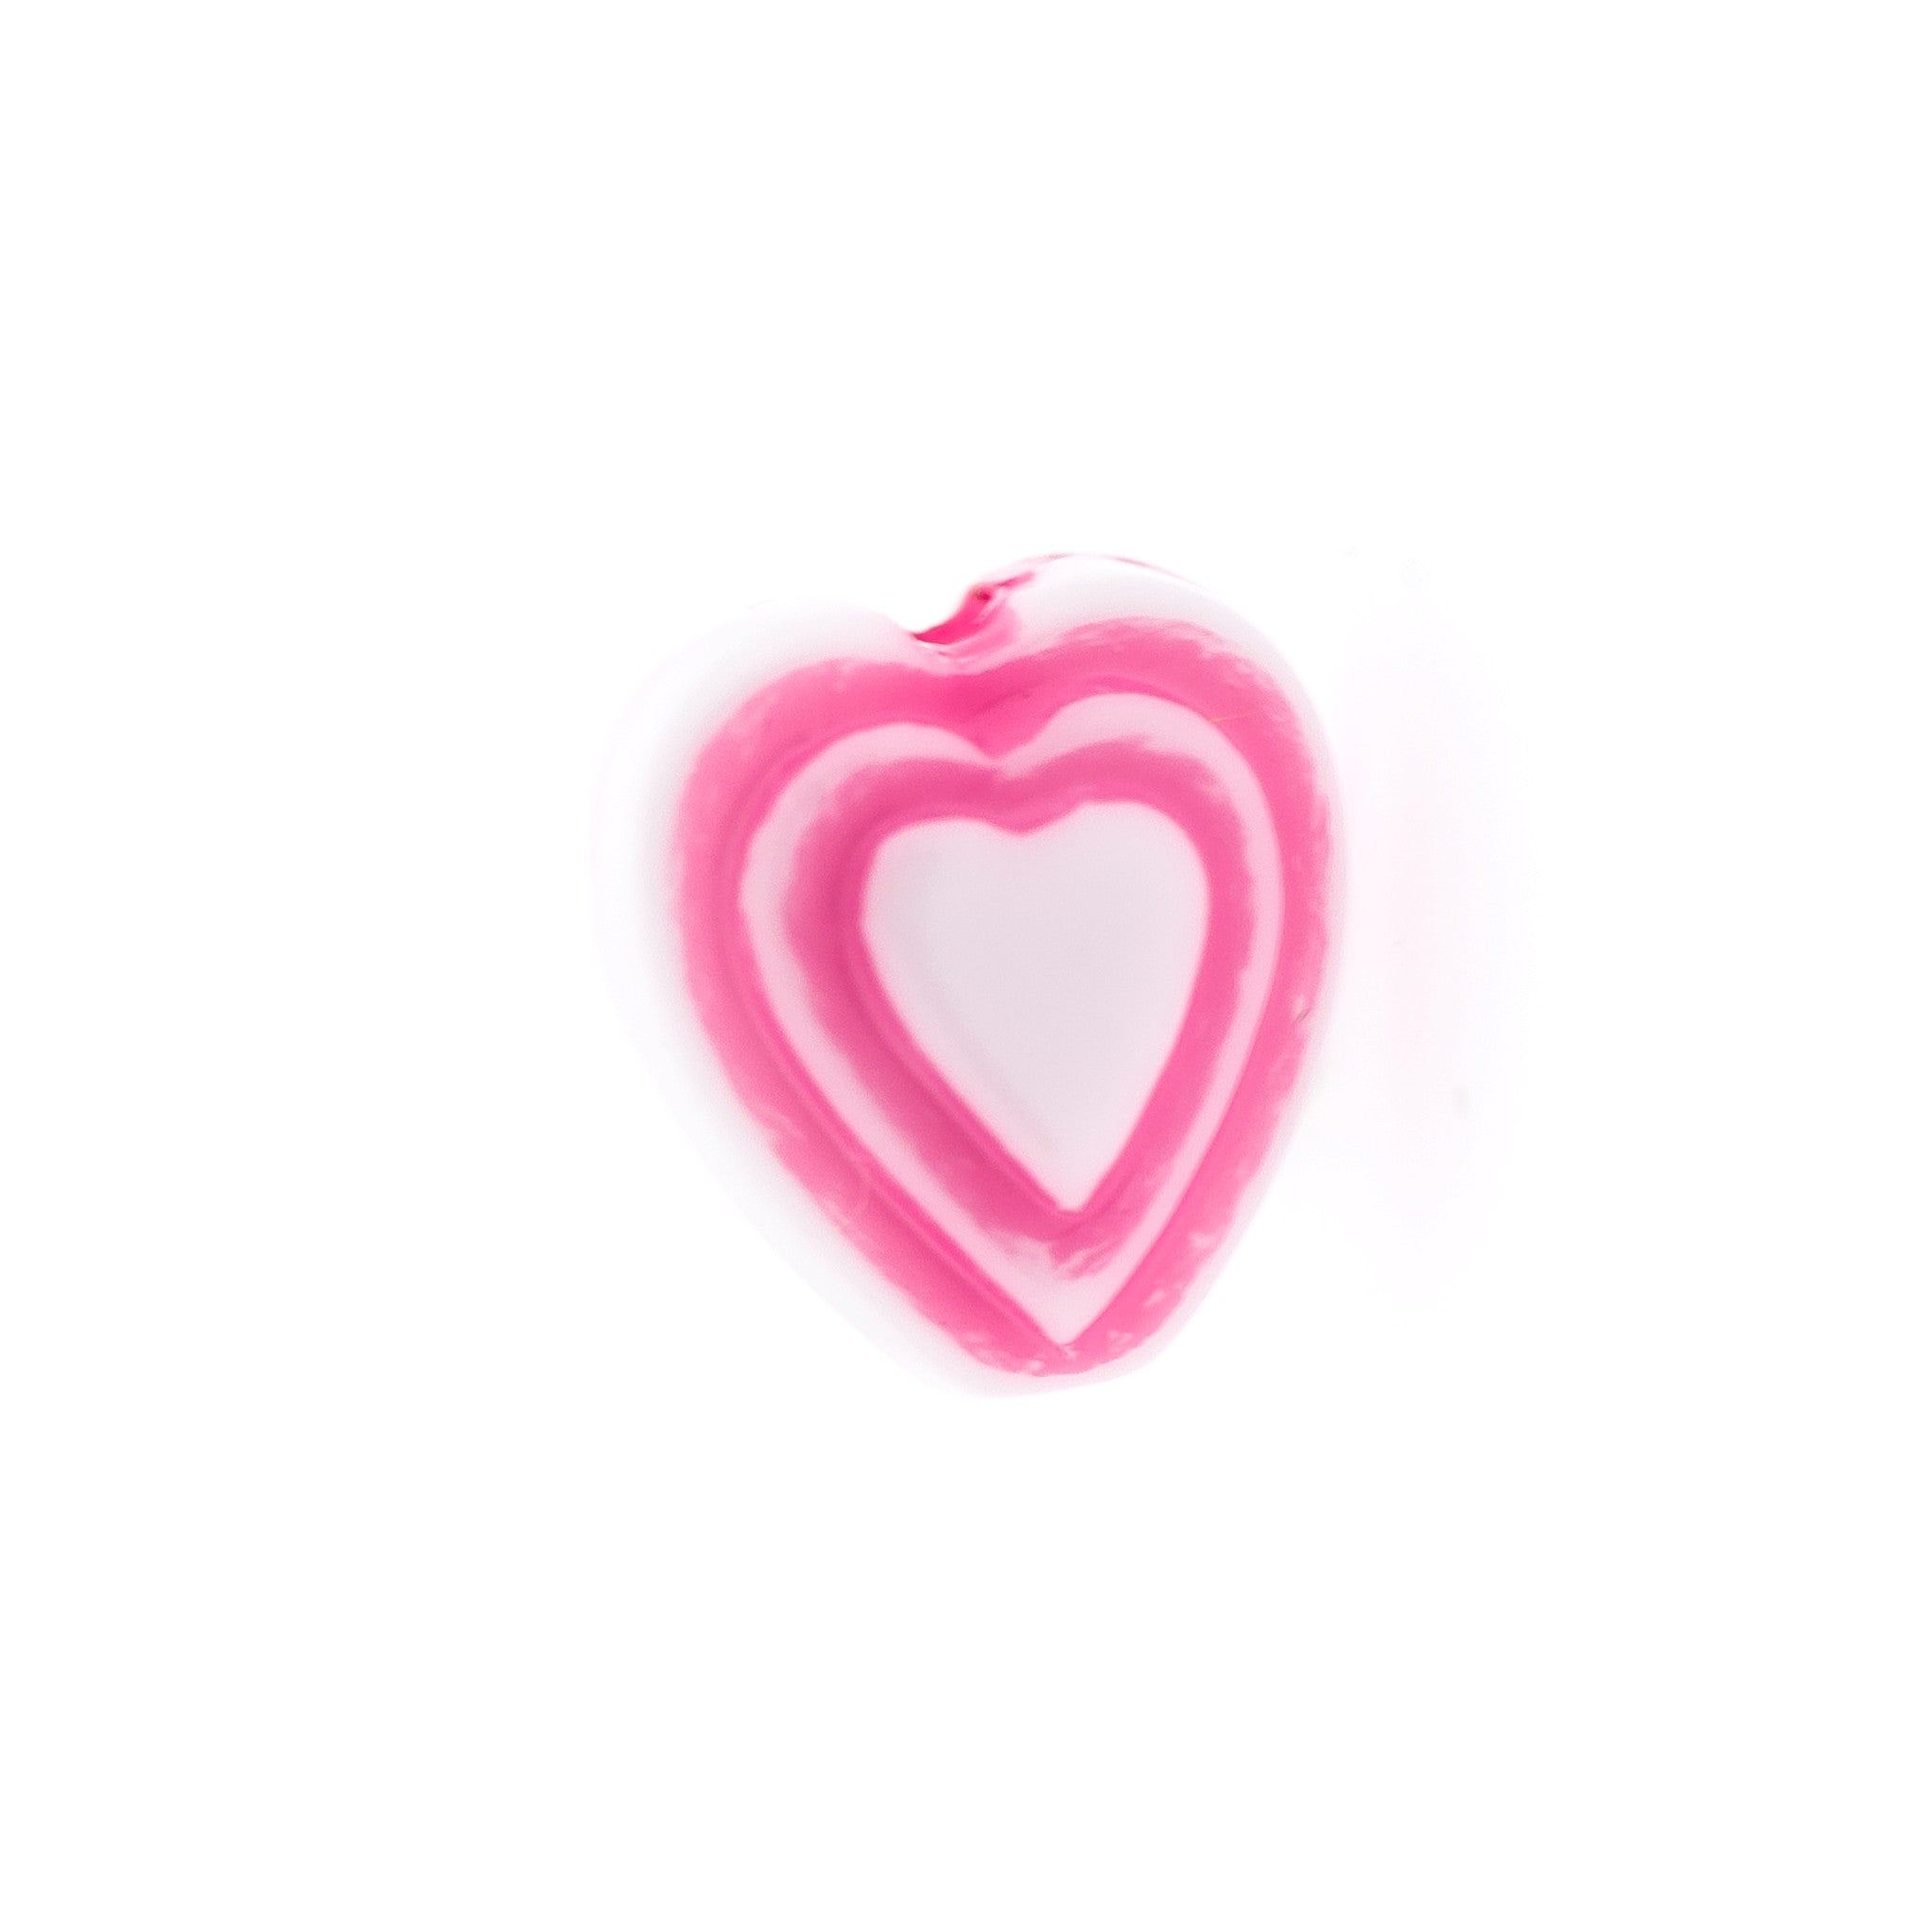 6MM Pink On White Heart Bead (144 pieces)